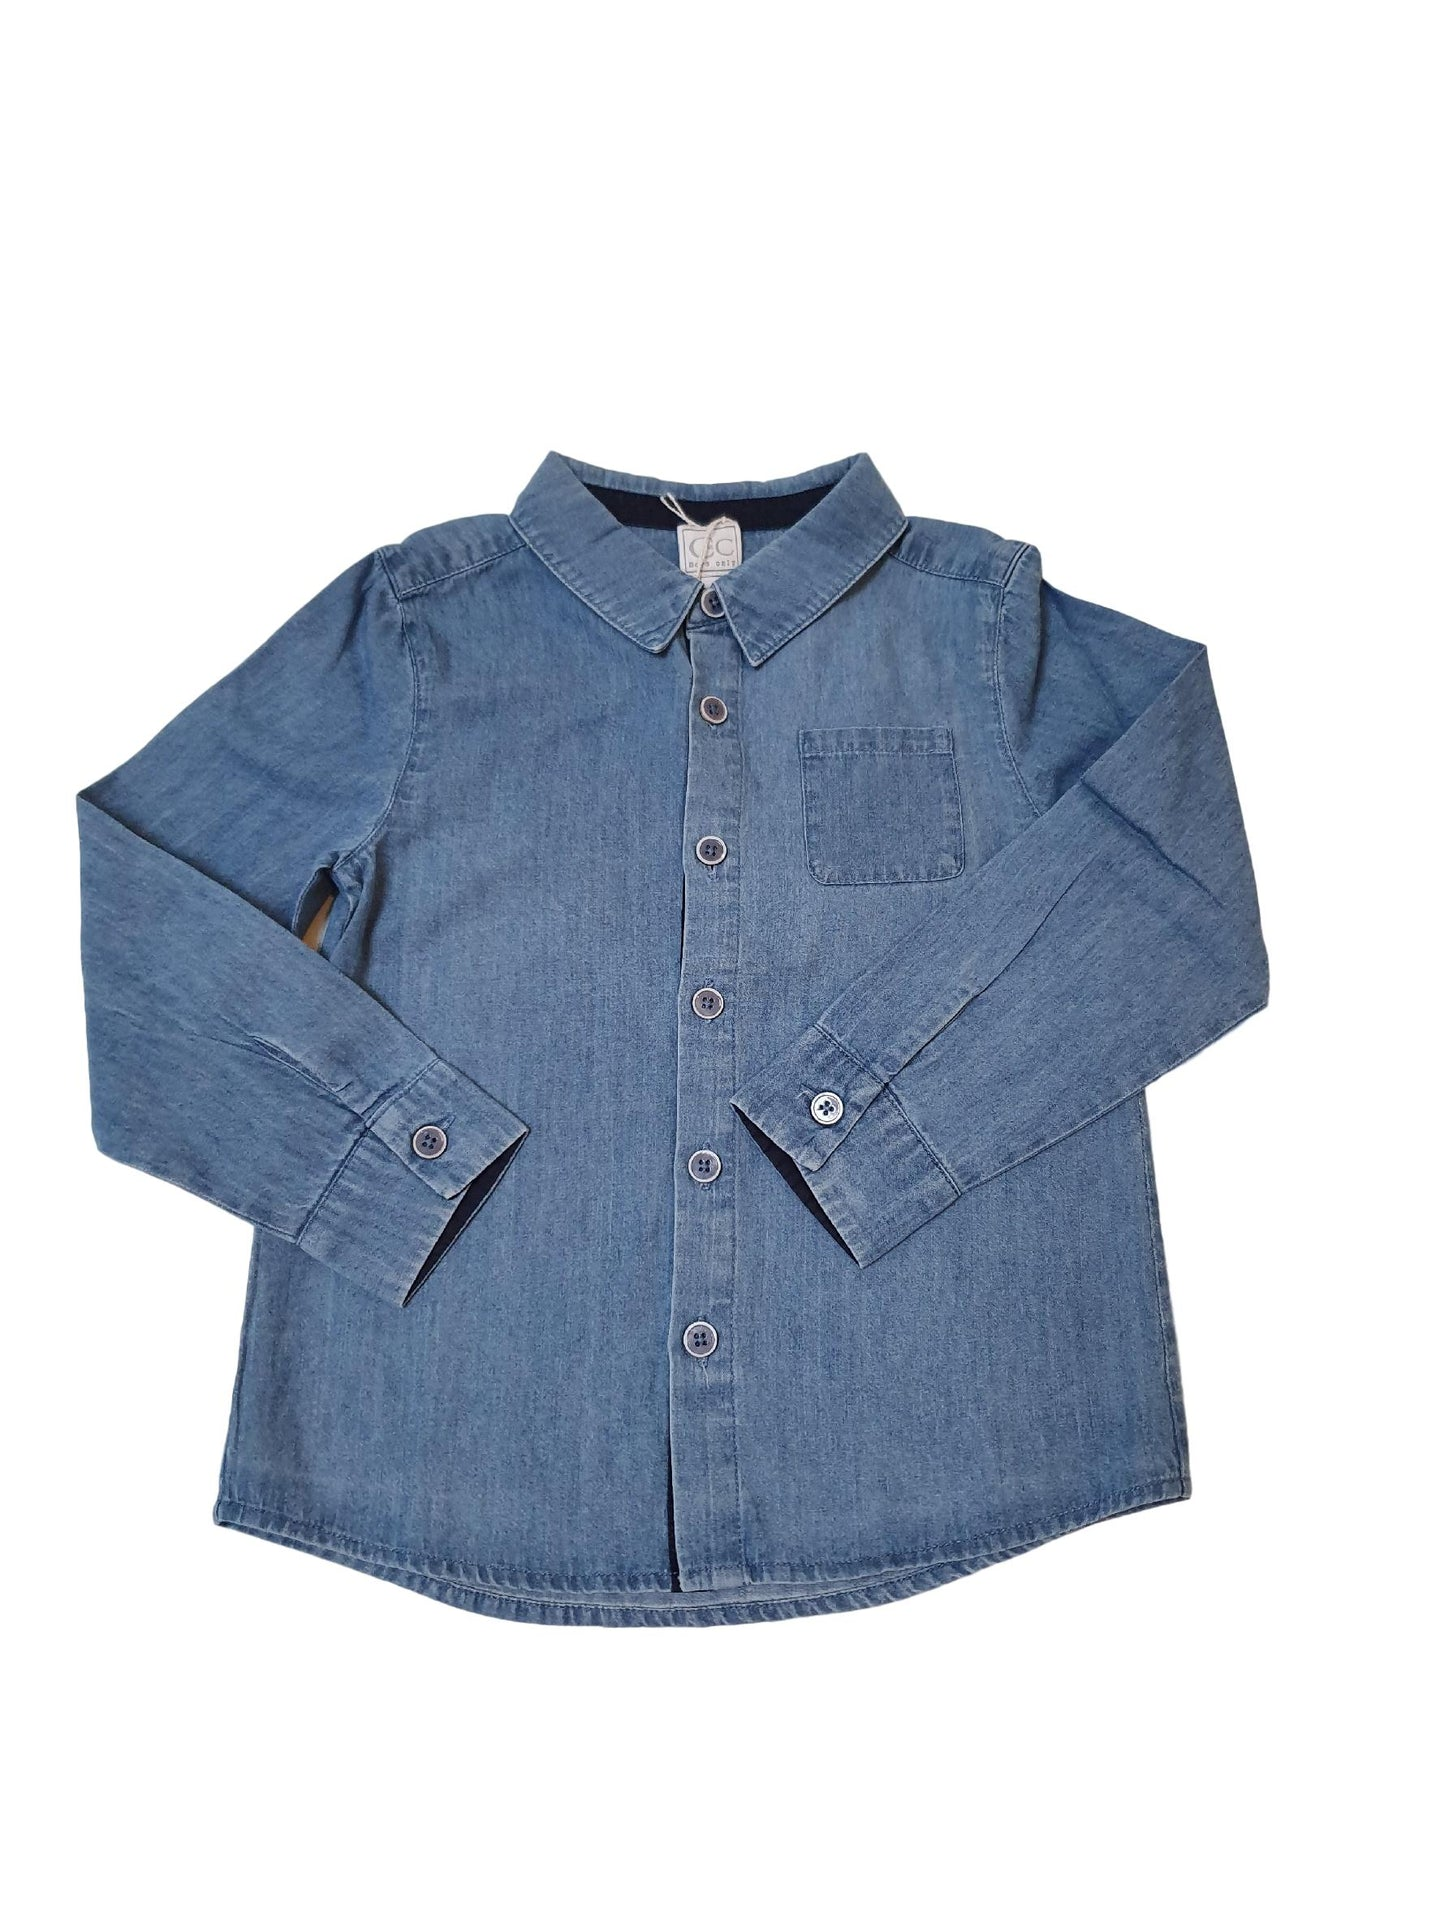 C de C boy shirt 4yo